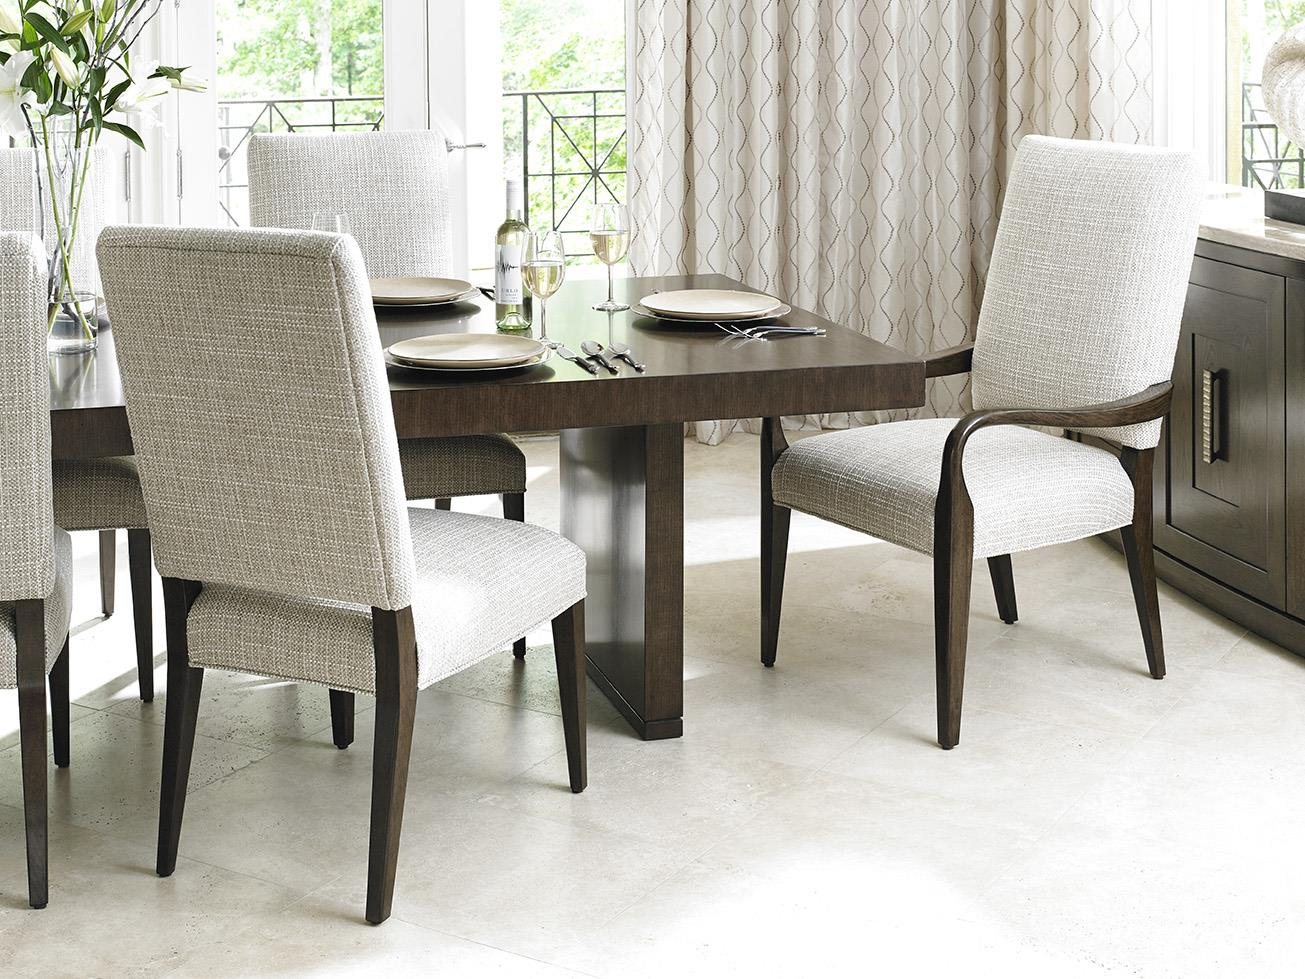 Baer S Furnishing Create A Dining Room With Elegance And